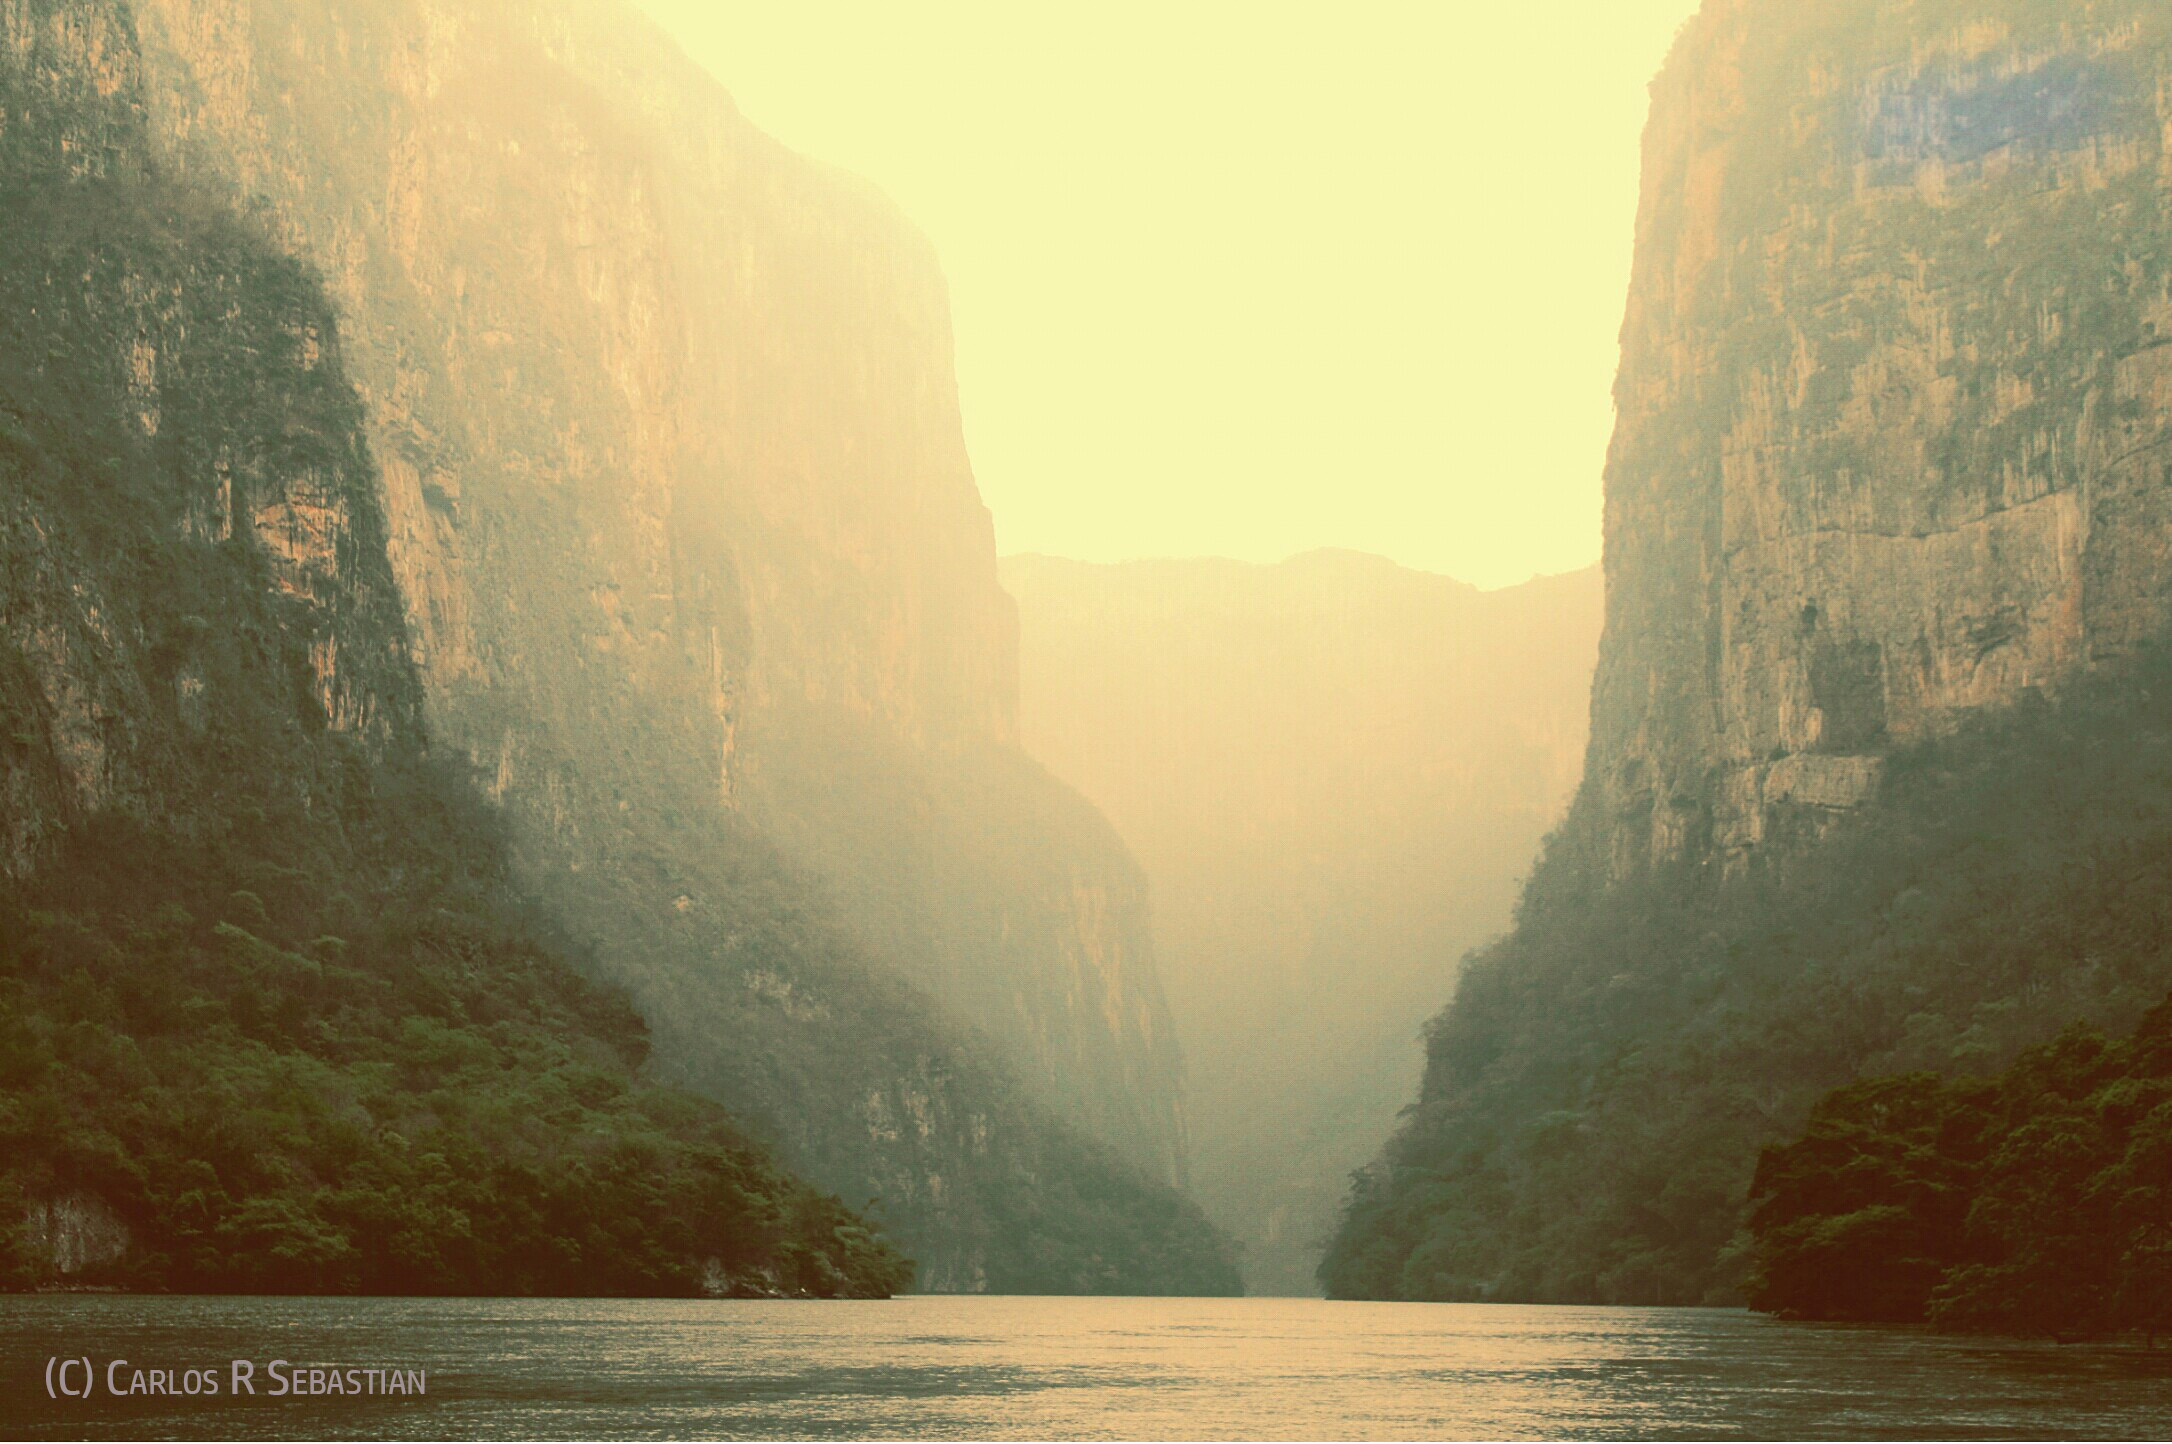 Enlightment is the process of awakening to the light that directs our life - Cañon del Sumidero - copyrighted image